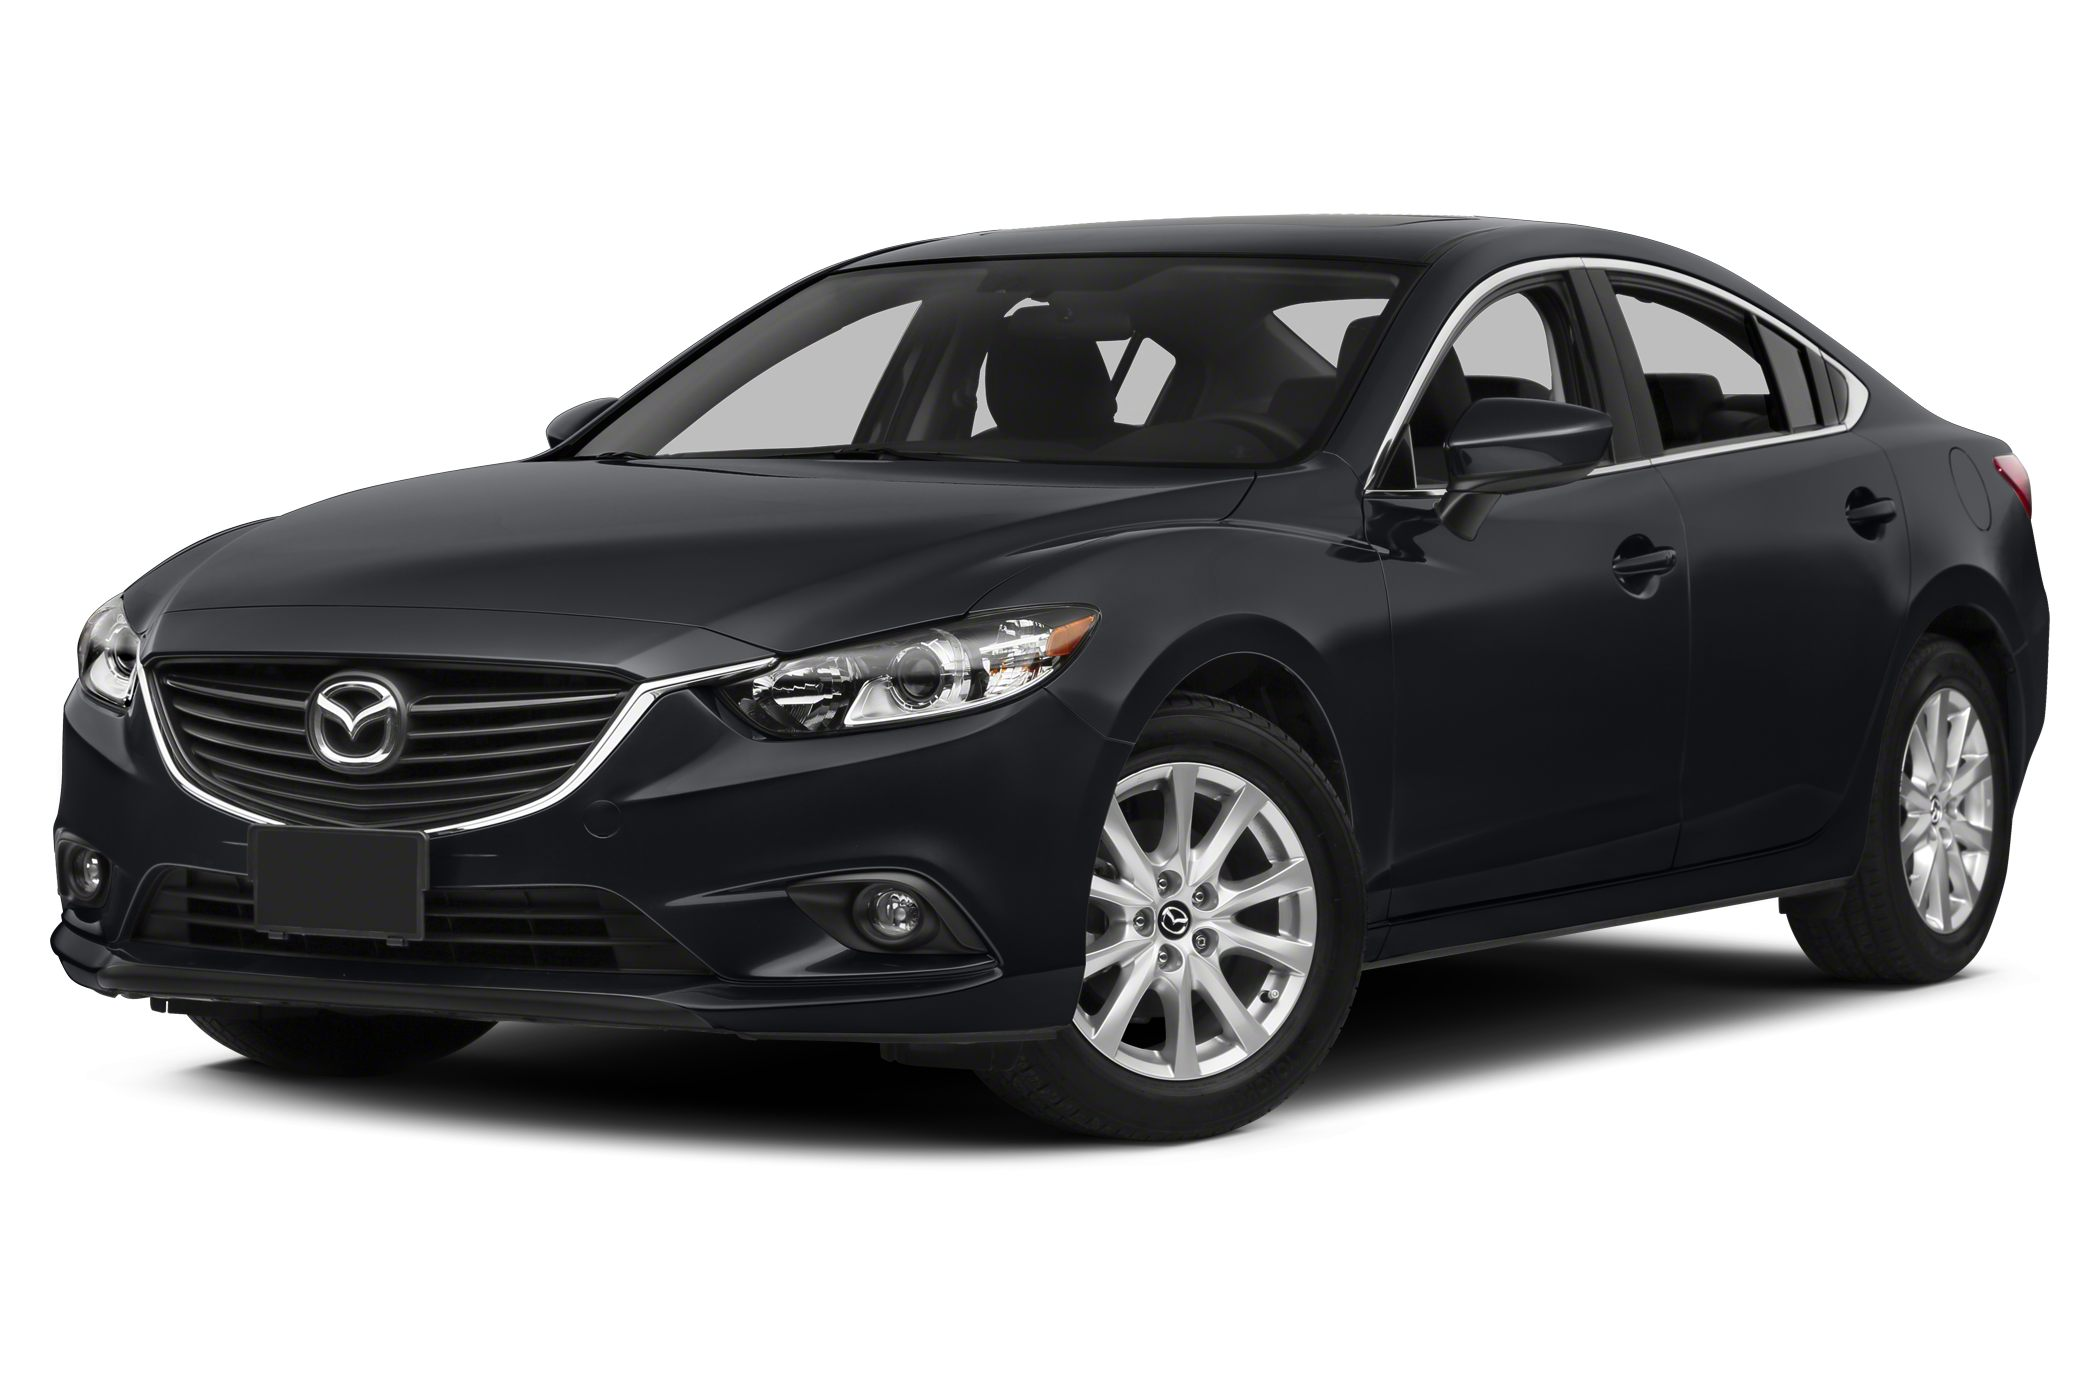 2015 Mazda Mazda6 I Grand Touring Sedan for sale in Fairless Hills for $28,783 with 0 miles.